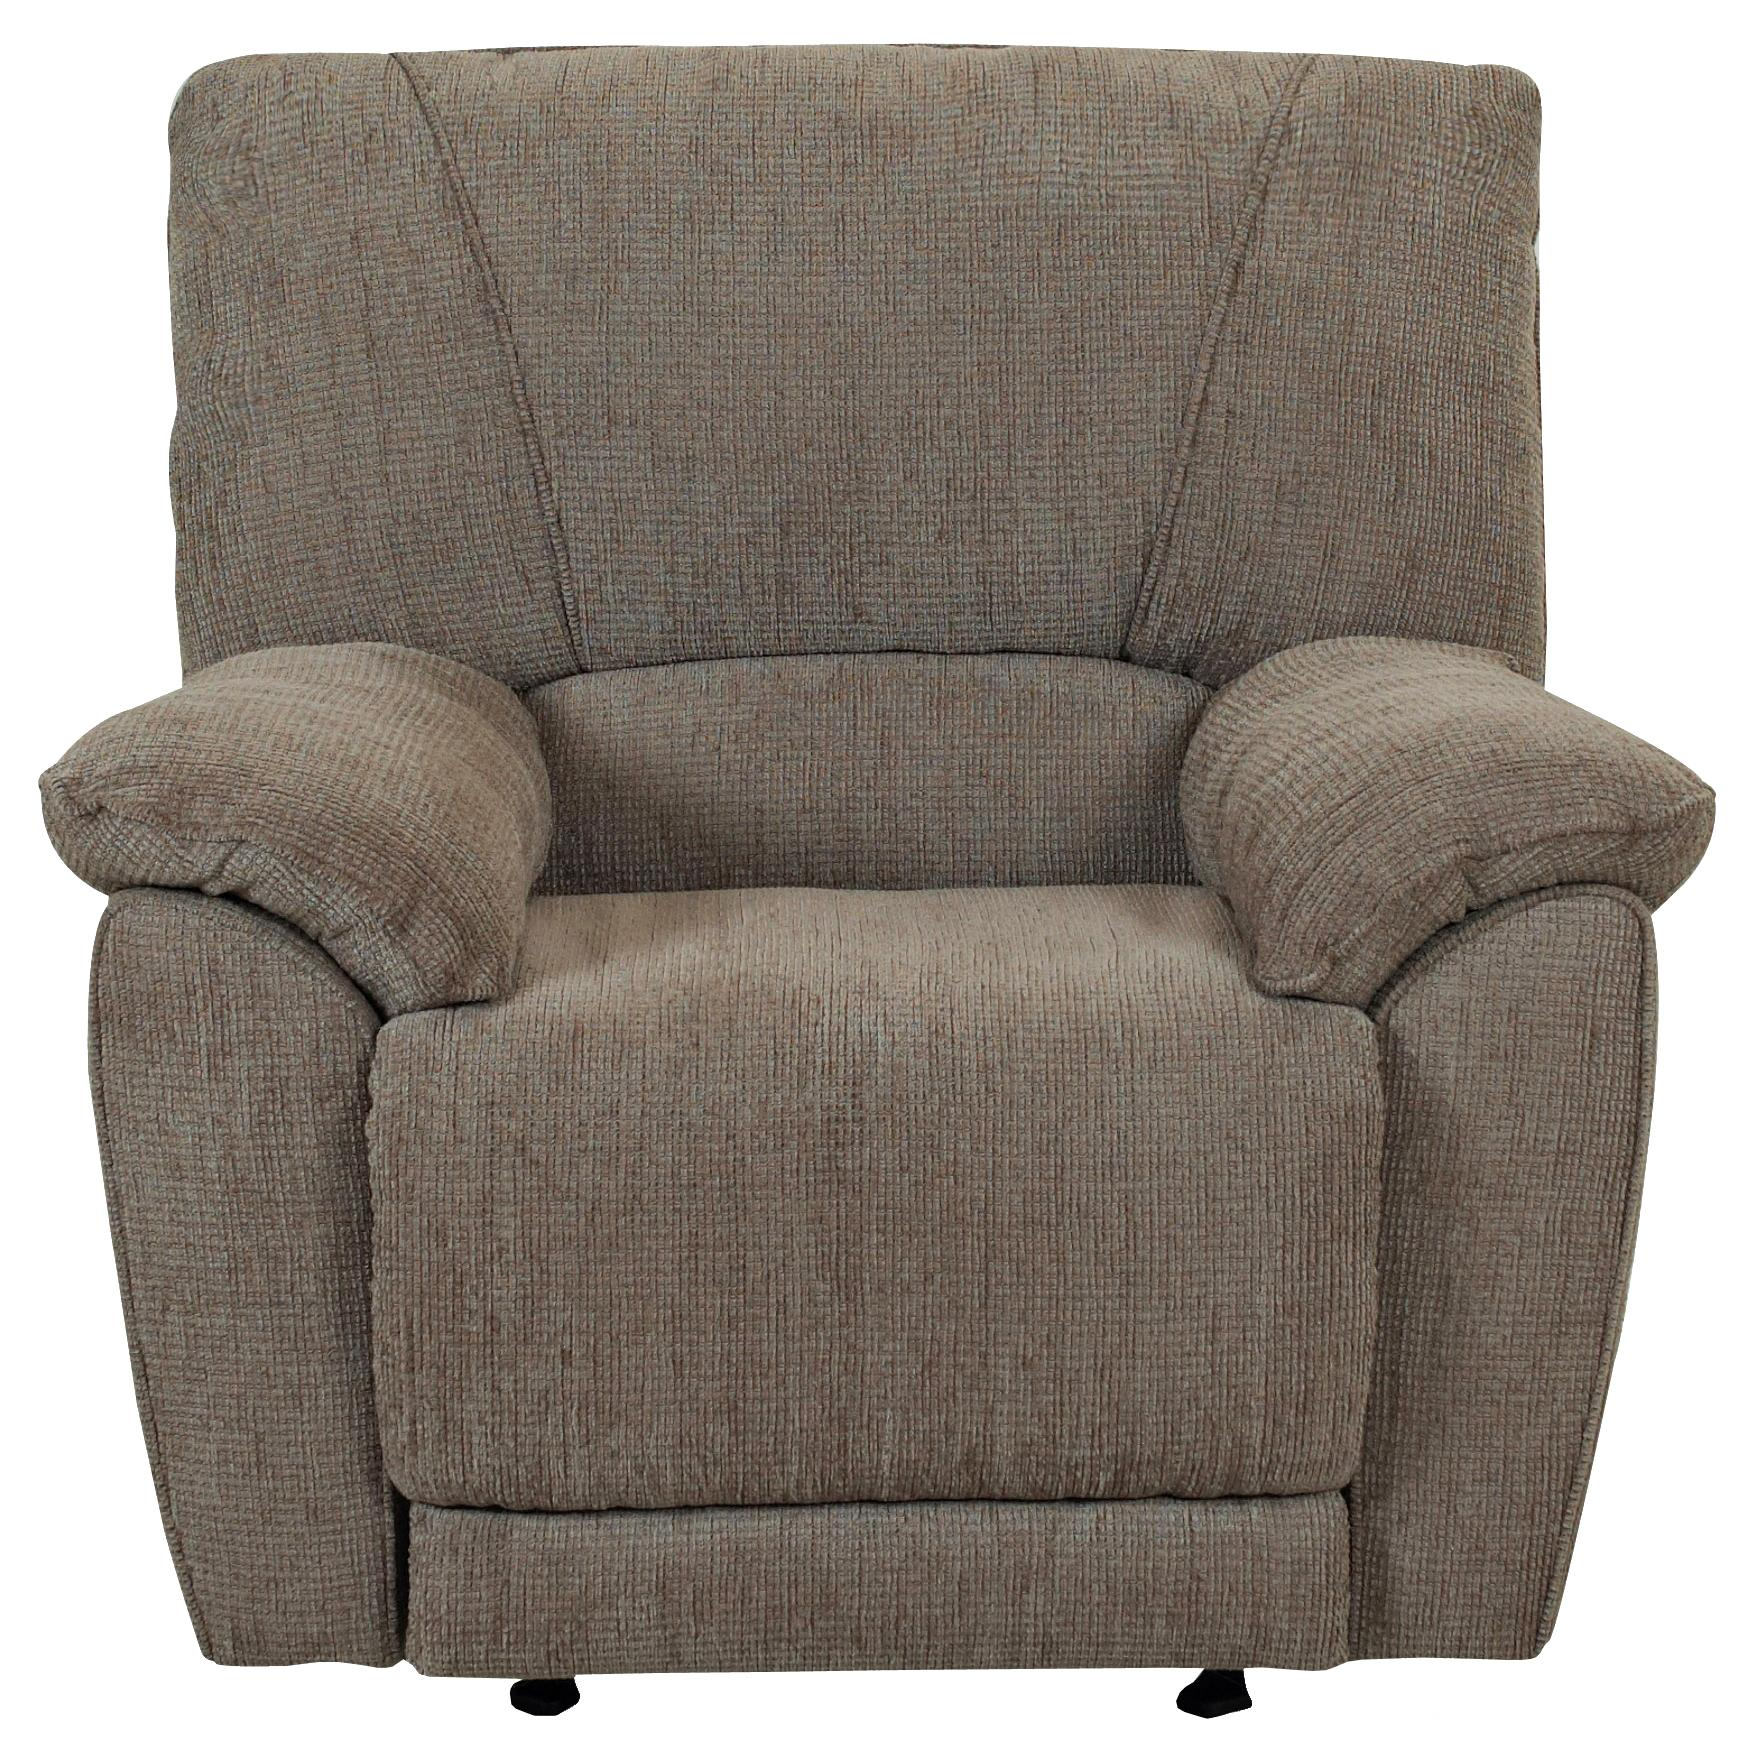 Klaussner Laredo  Reclining Chair - Item Number: 57903 RC